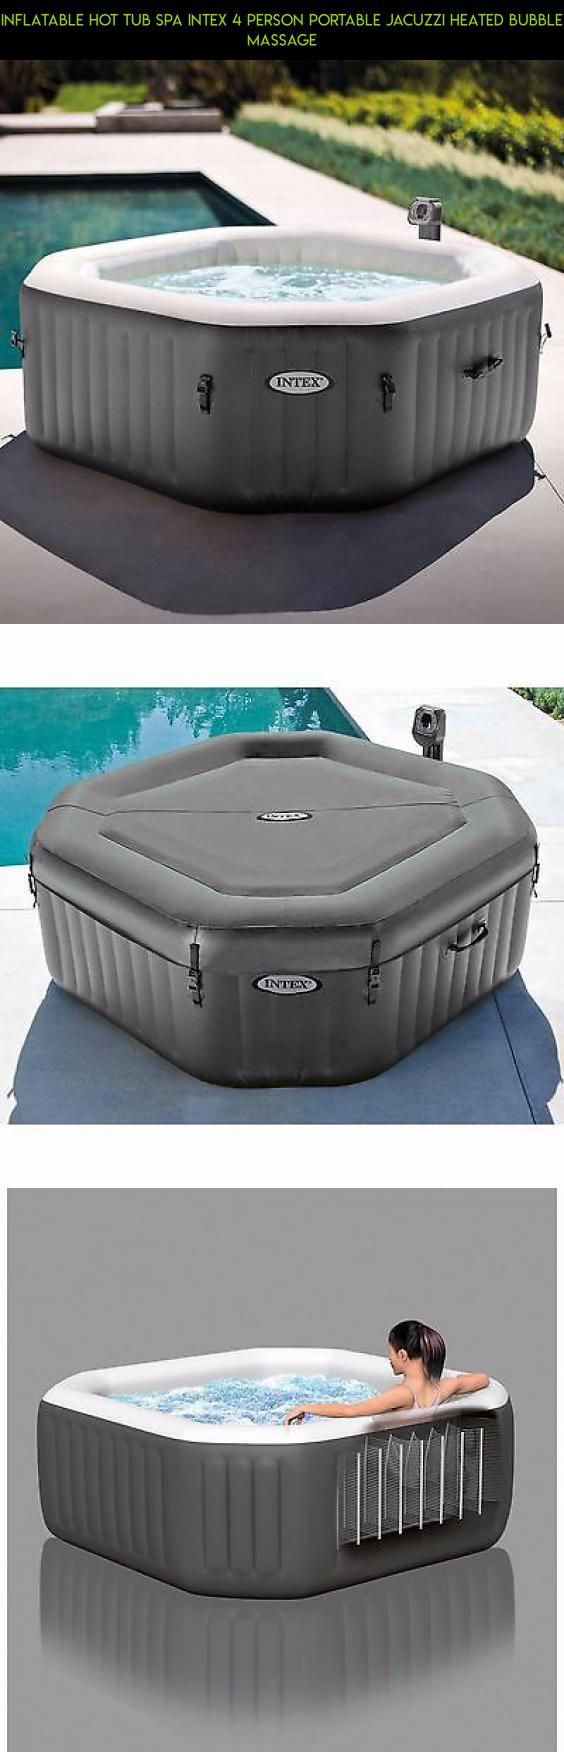 Cheap diy hot tub jacuzzi 4 - Inflatable Hot Tub Spa Intex 4 Person Portable Jacuzzi Heated Bubble Massage Tubs Gadgets